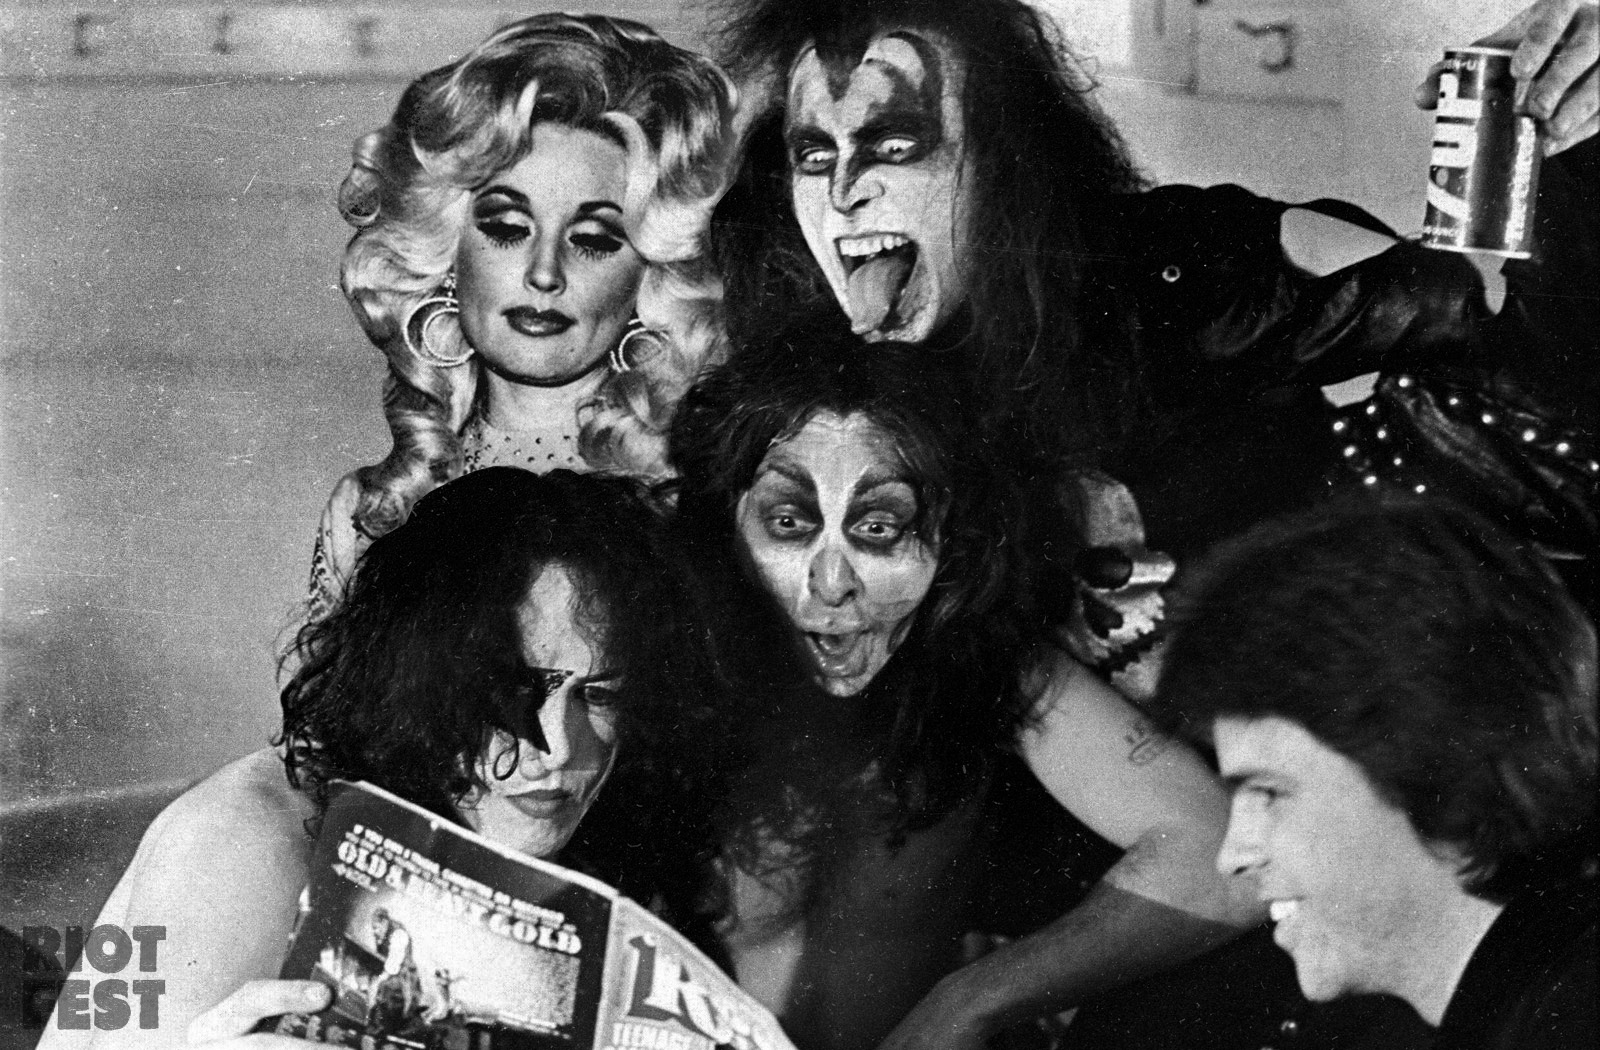 Strange but true when dolly parton met kiss riot fest the band kiss was a big fan of dolly parton and when the song i will always love you was released in 1974 ace frehley asked dolly parton if they could publicscrutiny Choice Image